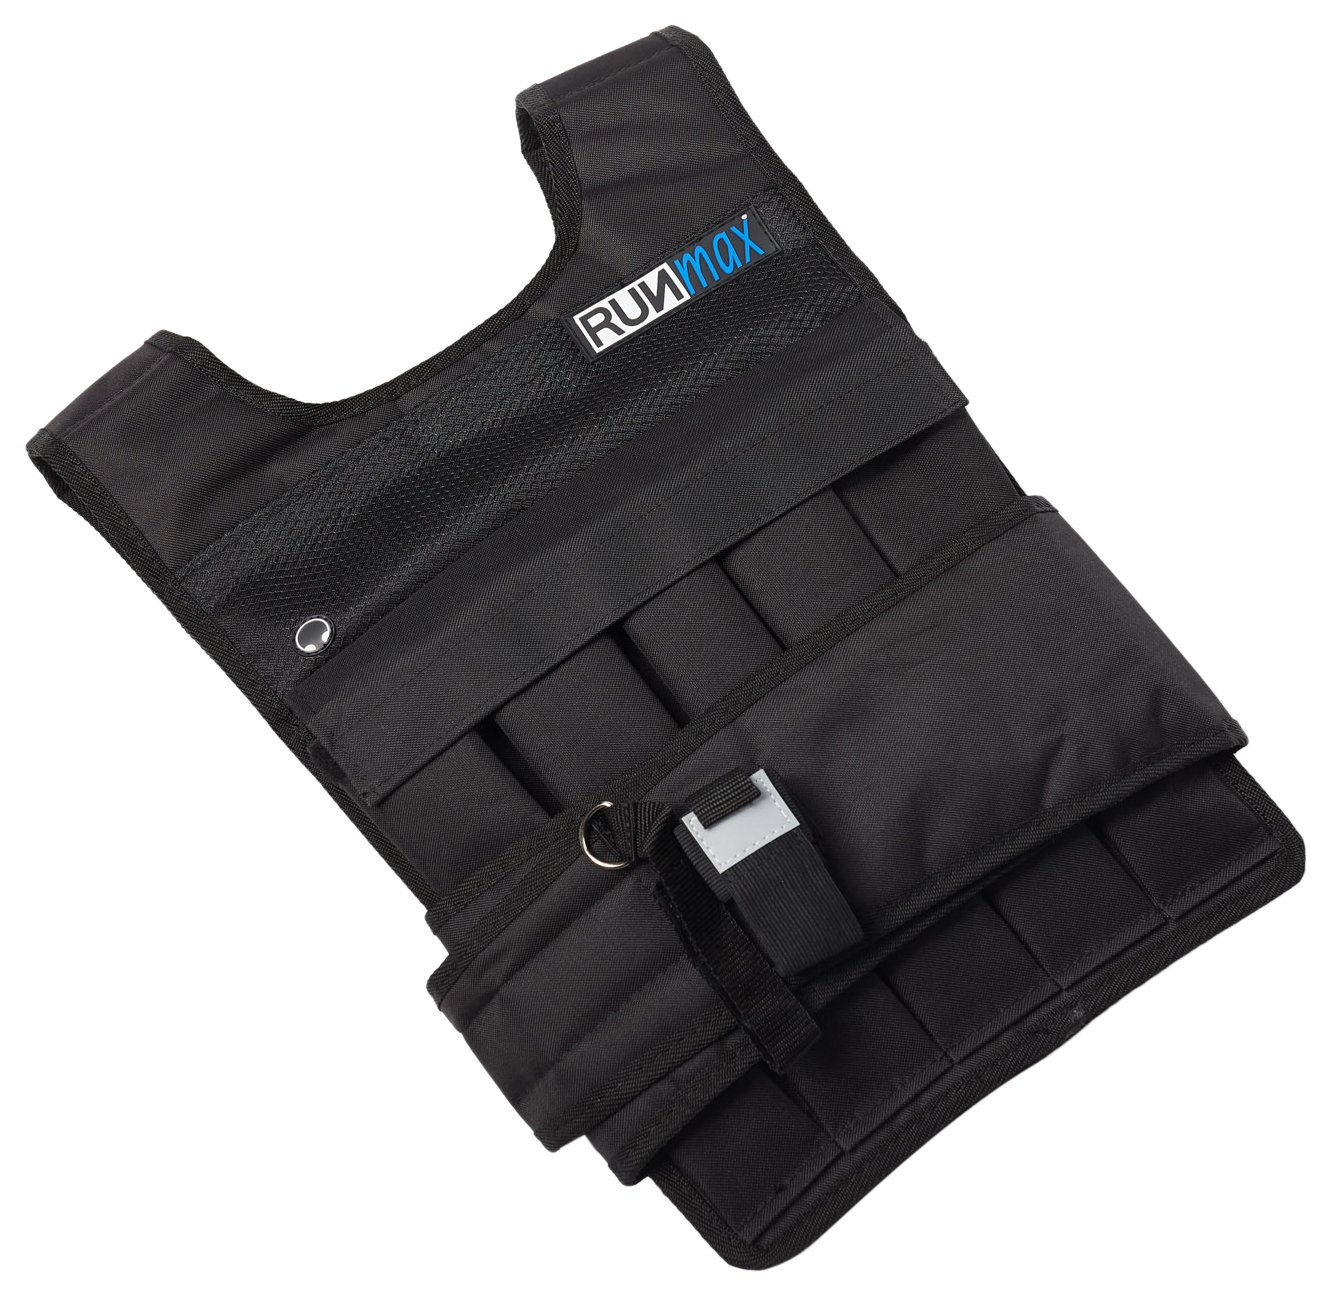 RUNFast RM_40 Pro Weighted Vest 12lbs.-60 lbs. (Without Shoulder Pads, 40 lb.) by RUNmax (Image #1)